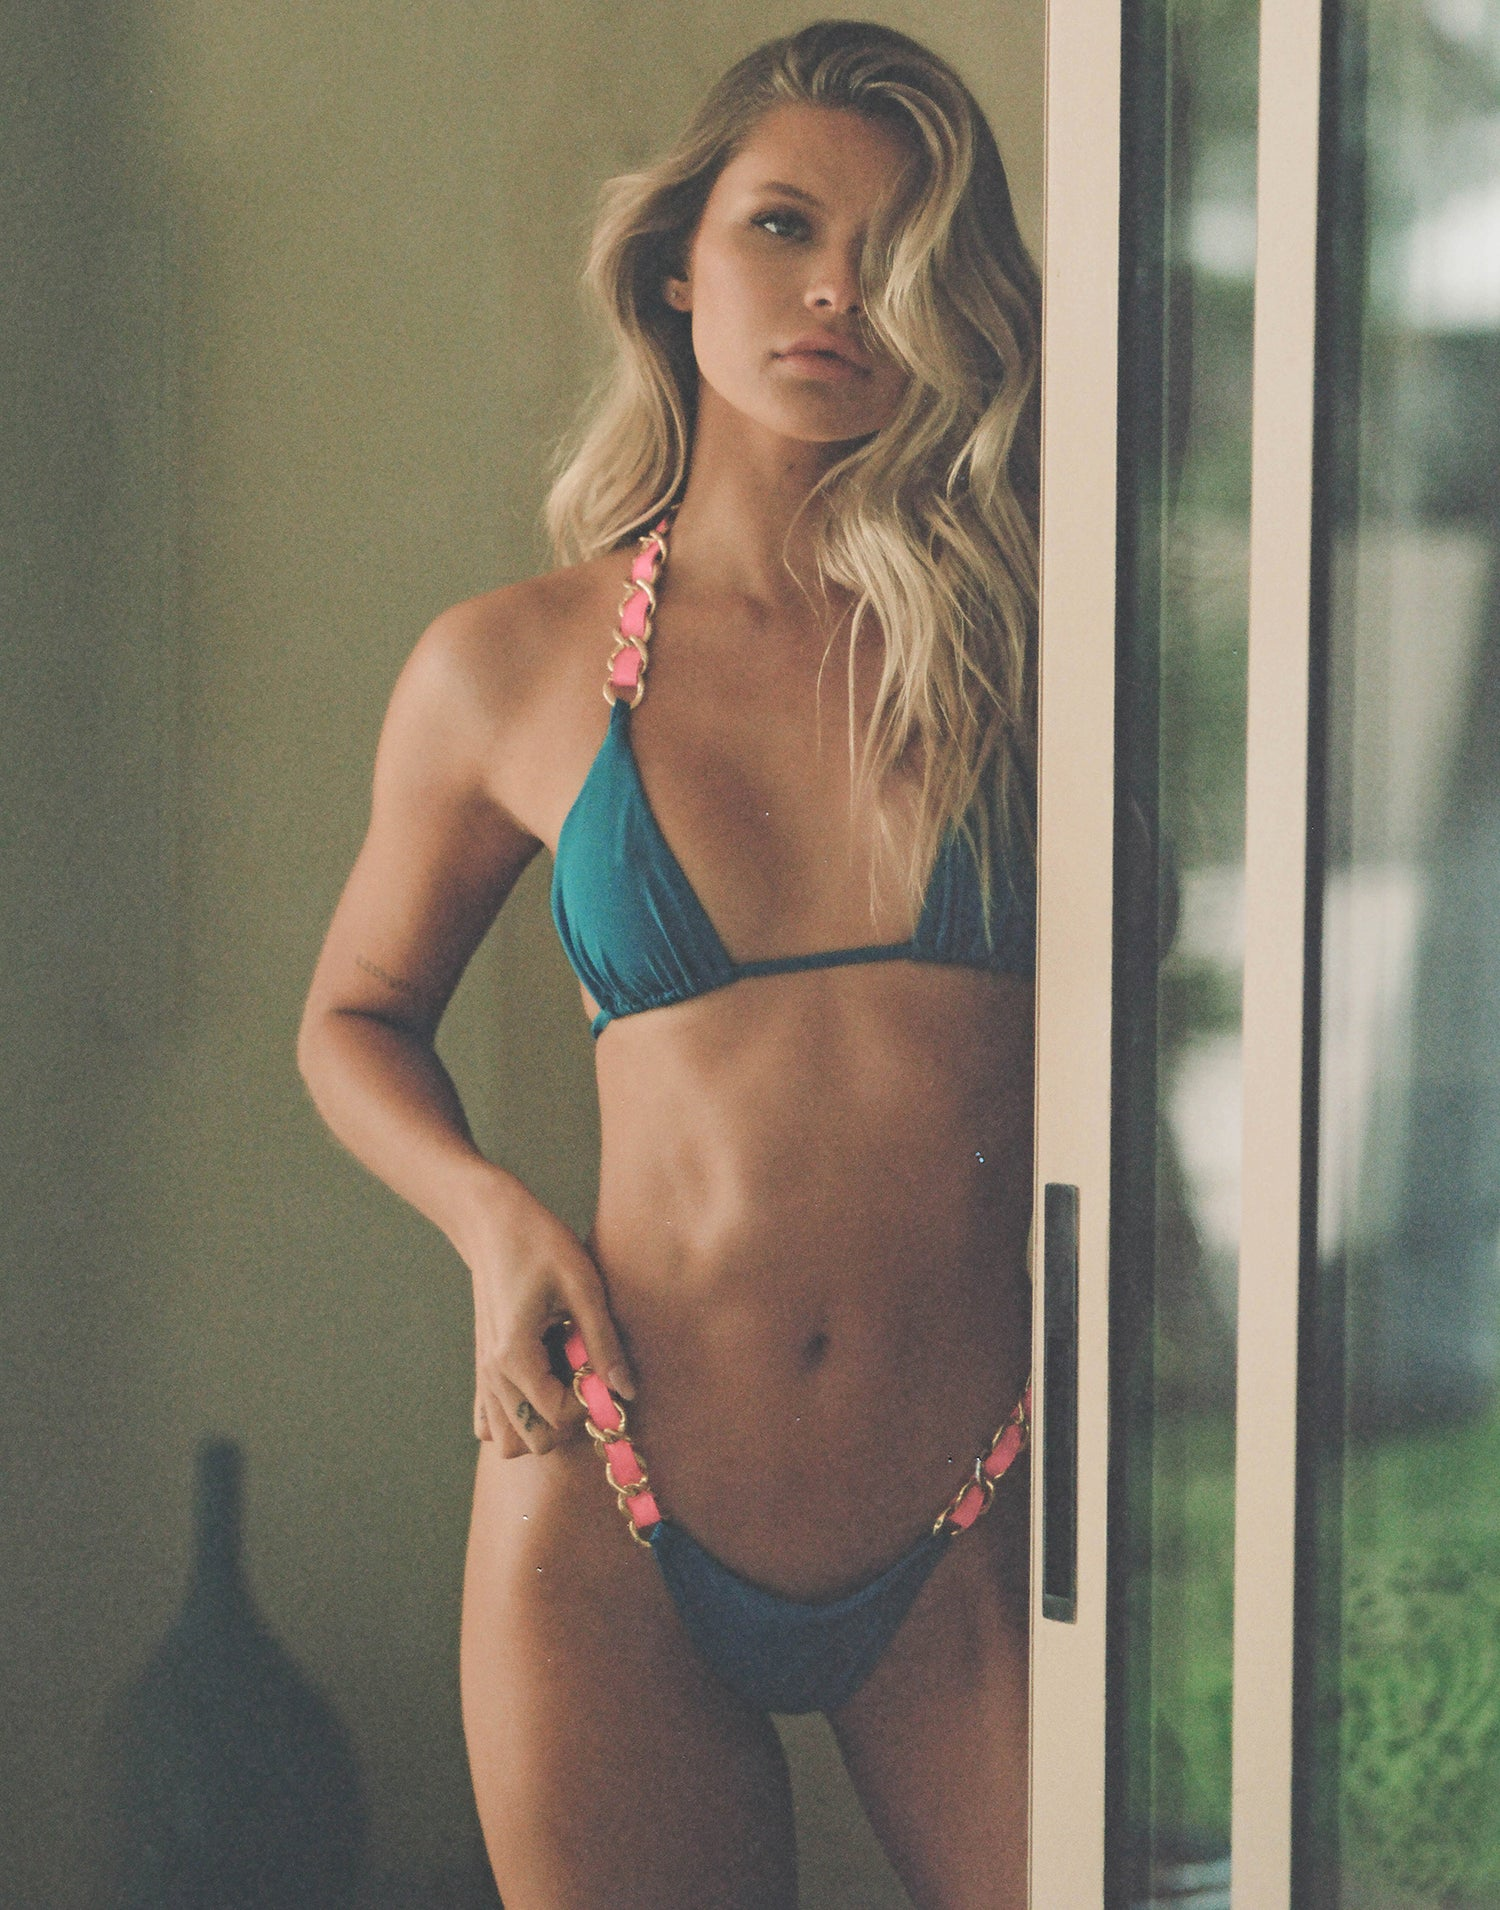 Brynn Tango Bikini Bottom in Ortensia Blue with Pink Straps with Gold Hardware - Alternate Front View / Summer 2021 Campaign - Josie C